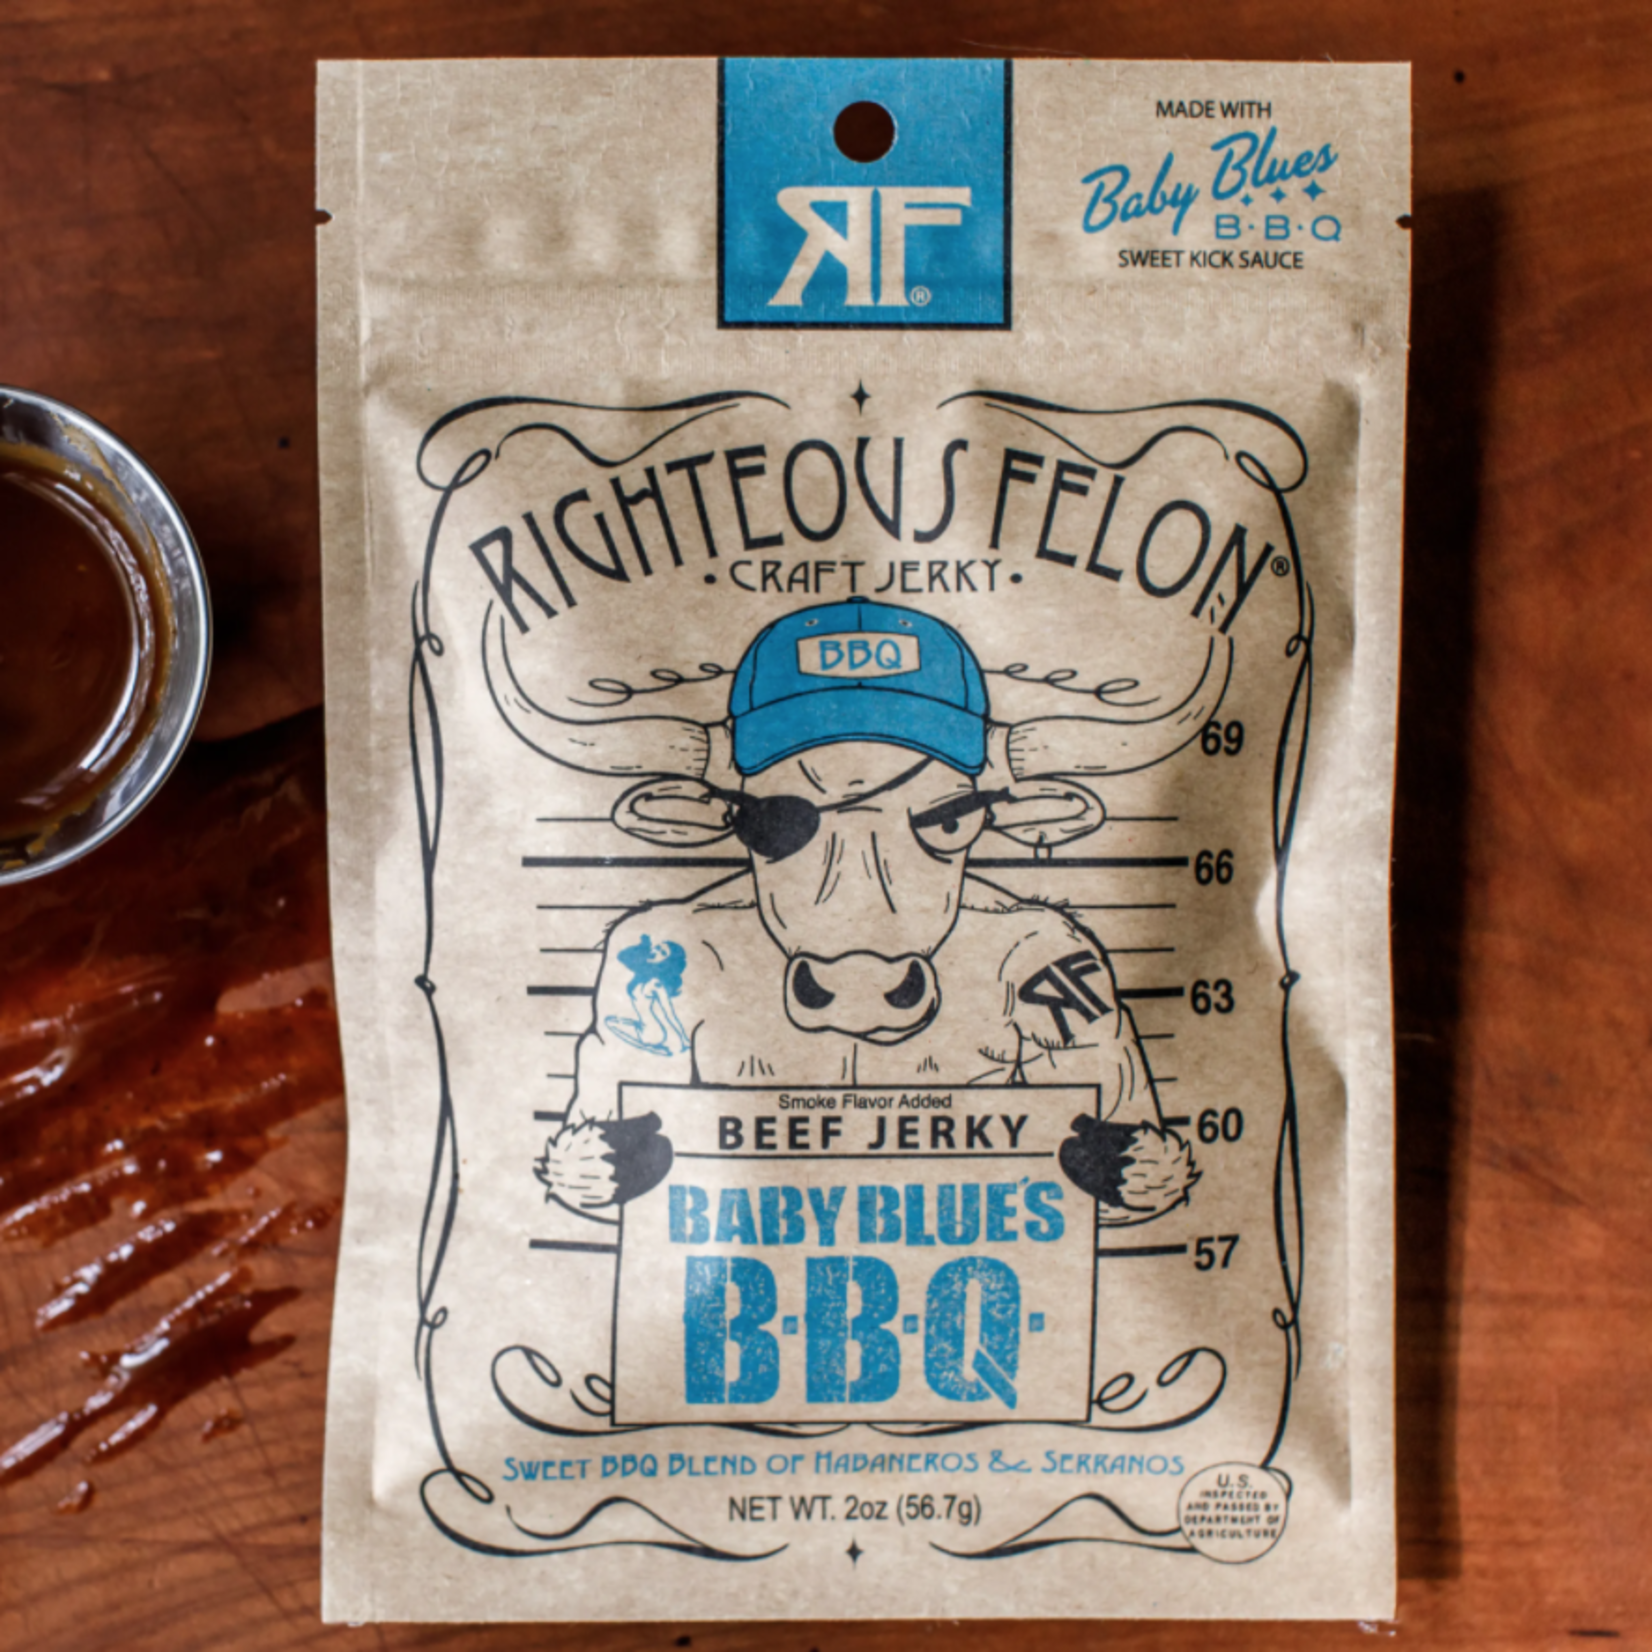 Righteous Felon Baby Blues BBQ Jerky